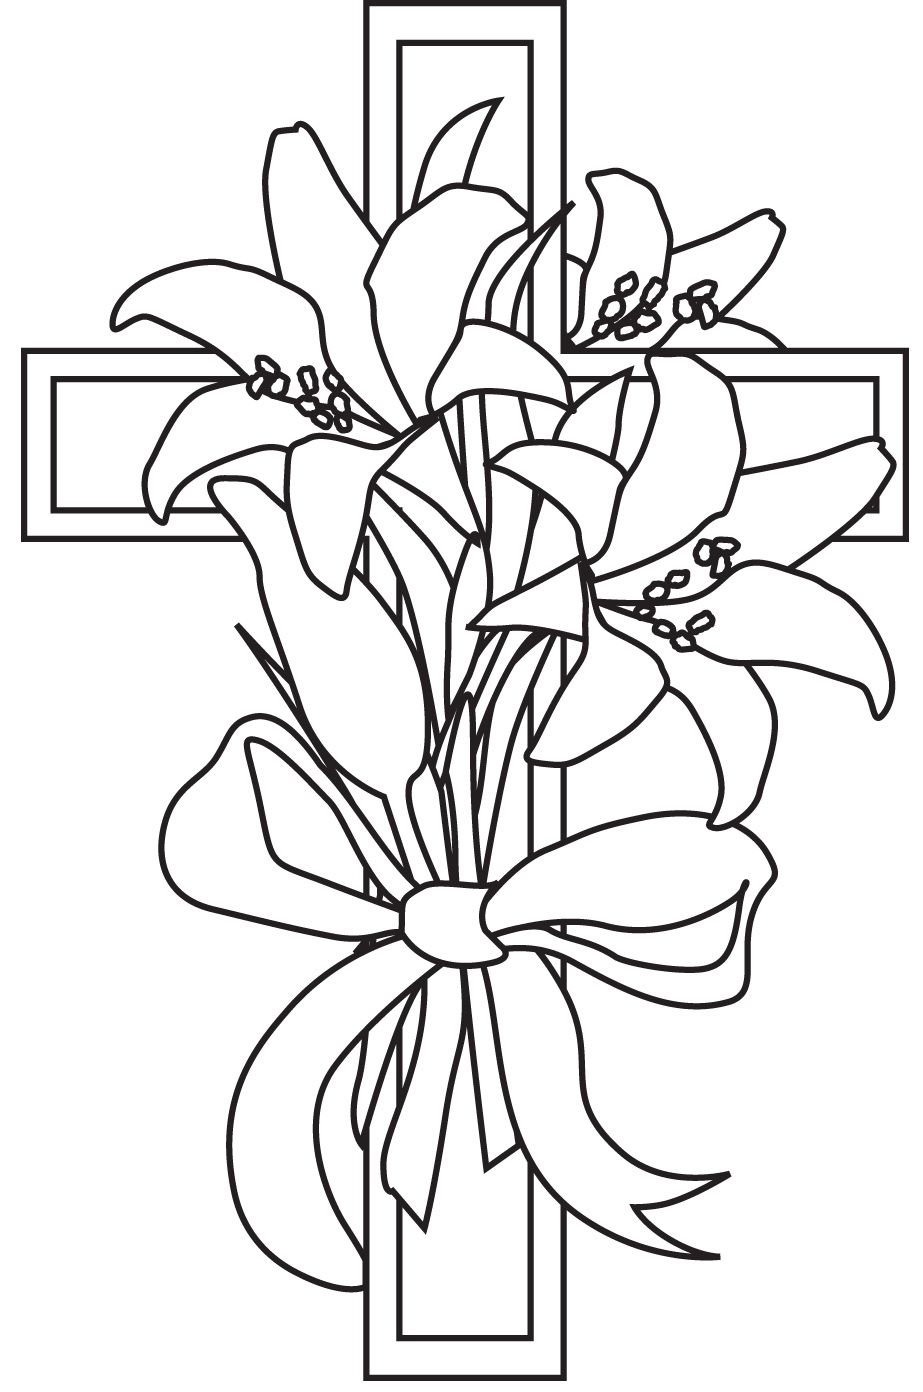 Related image Easter lily, Easter cross